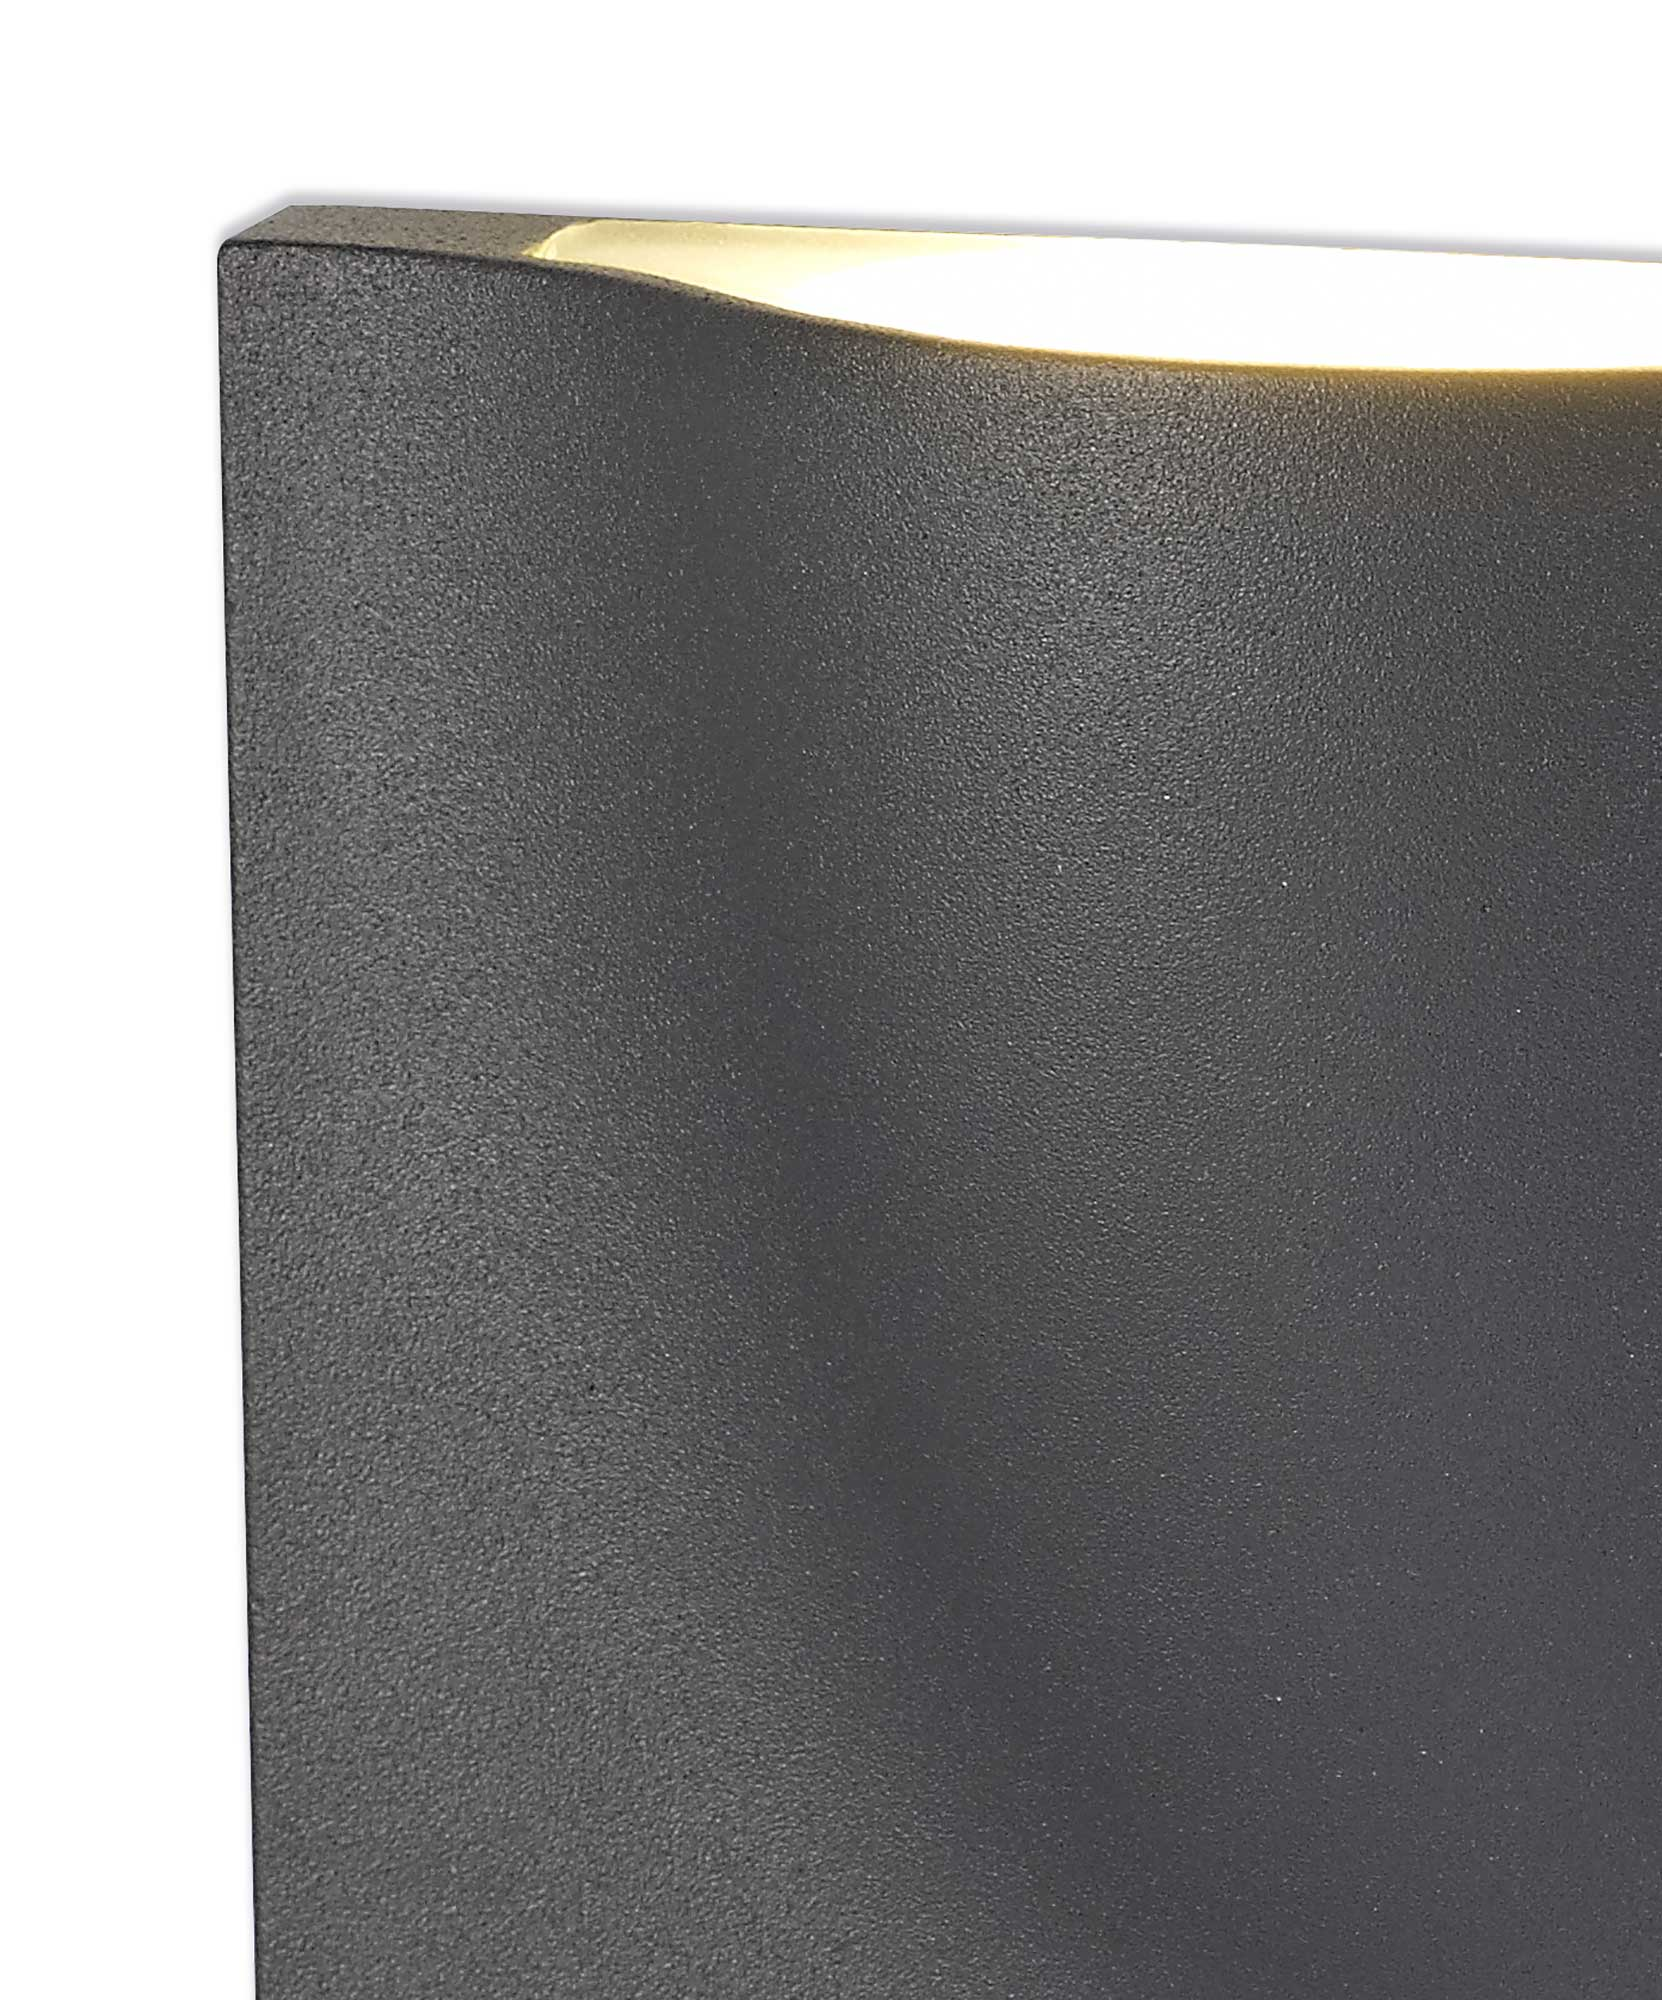 Wall Lamp, 1 x 6W LED, 3000K, 510lm, IP54, Anthracite, 3yrs Warranty